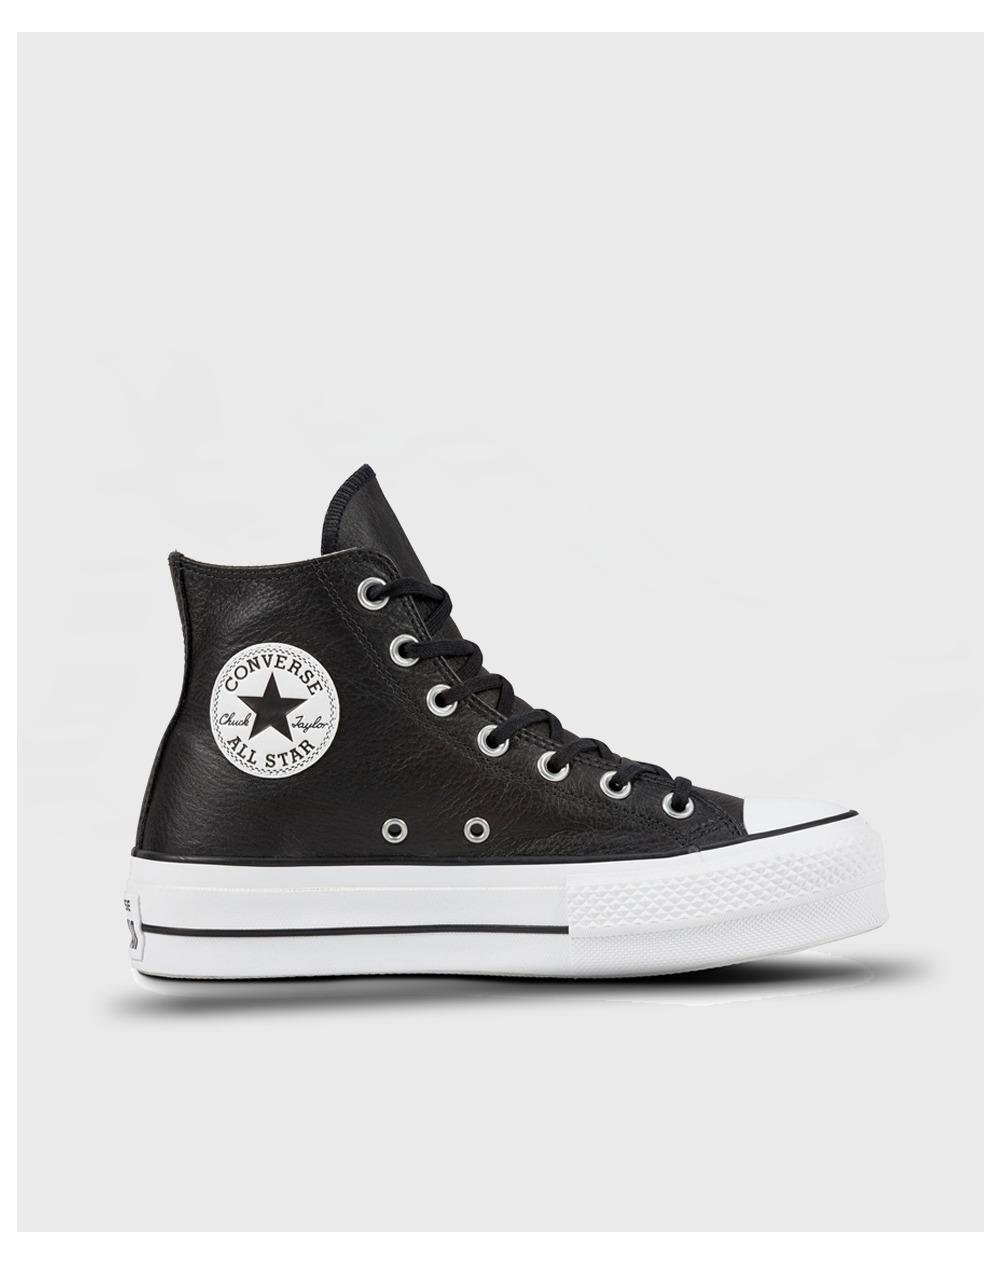 877560cabe1 Converse. Women s Black Chuck Taylor All Star Lift Clean Platform Hi Casual  Trainers